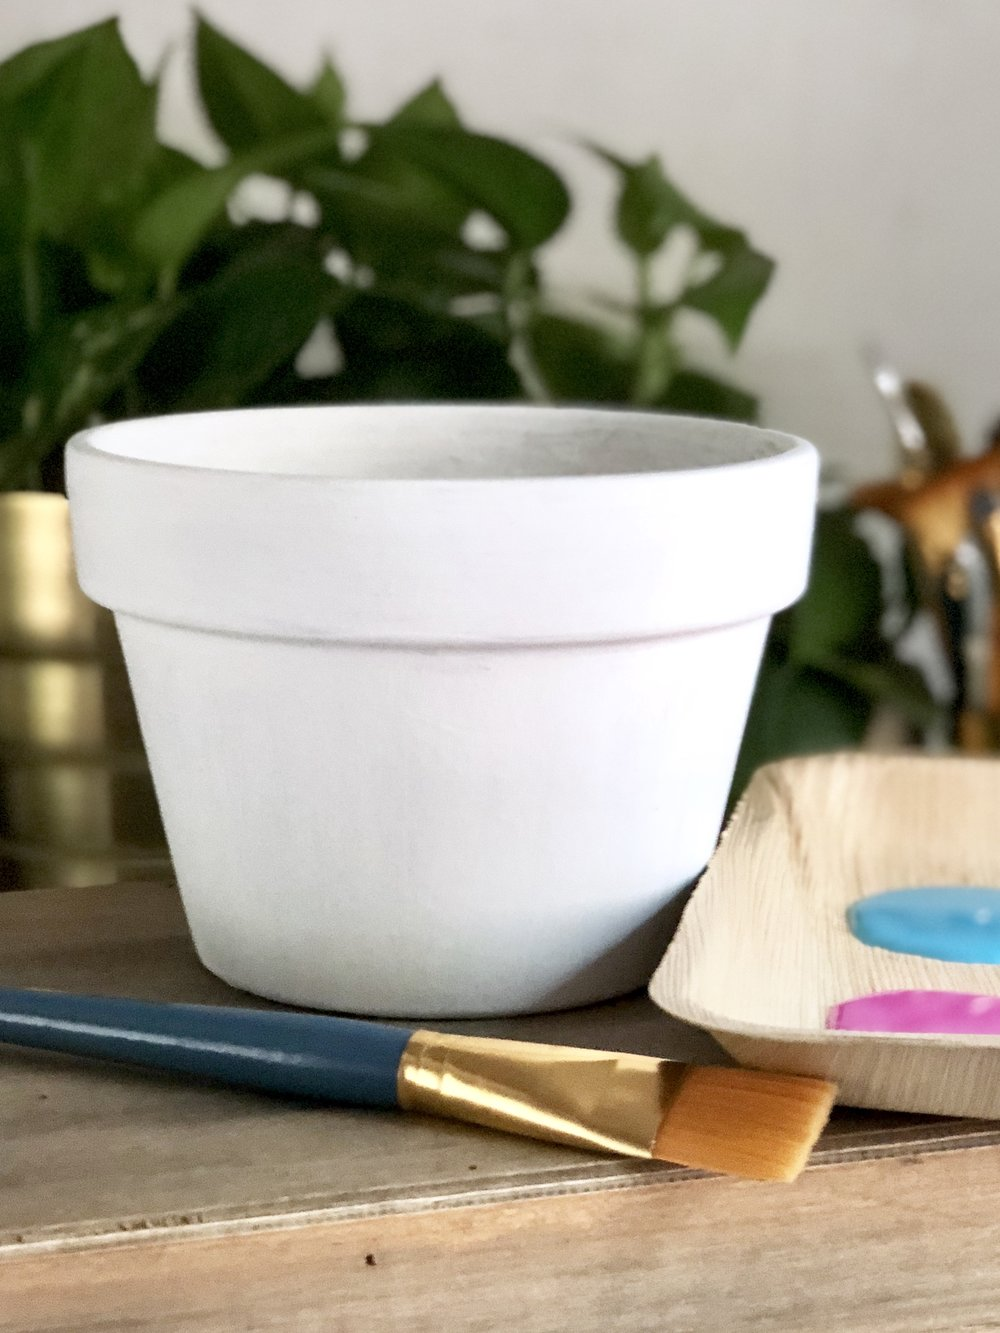 Make a funky pot with a colorful layered painting technique!